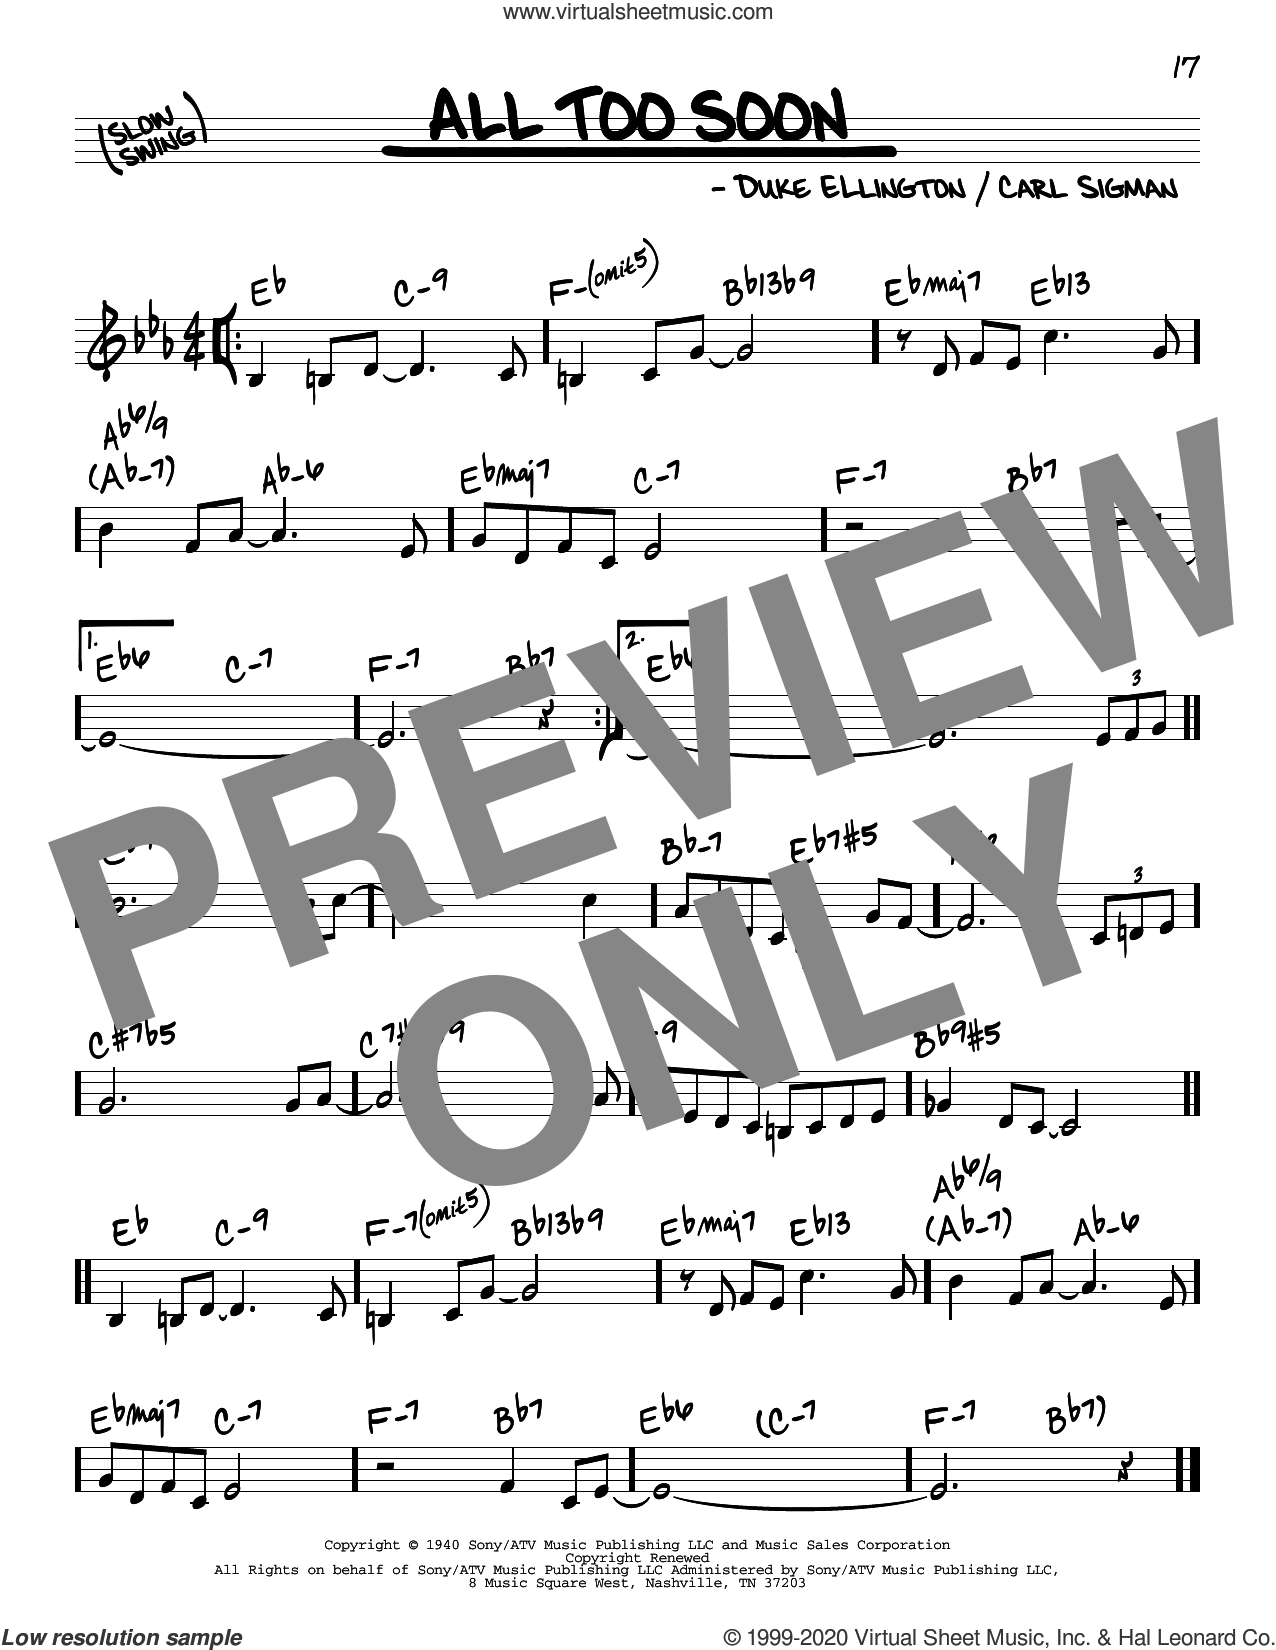 All Too Soon sheet music for voice and other instruments (real book) by Duke Ellington and Carl Sigman, intermediate skill level